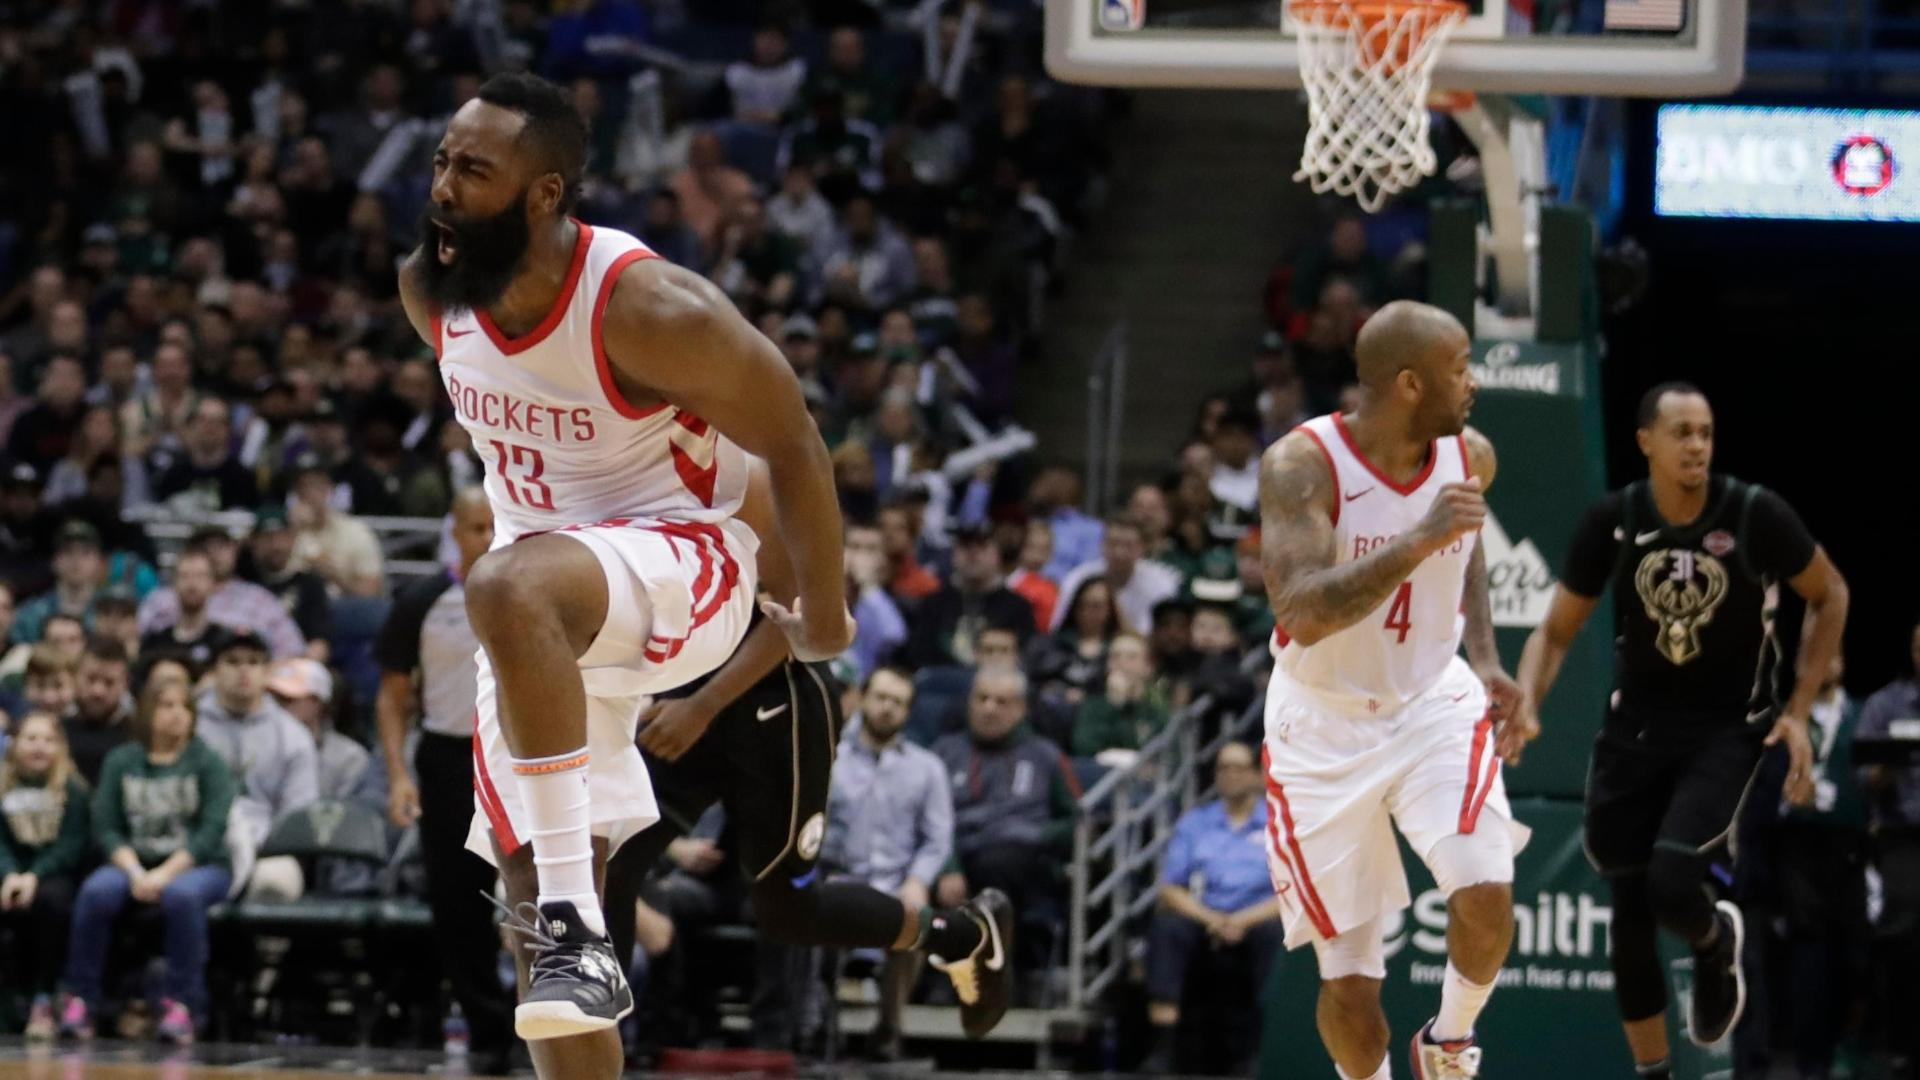 http://a.espncdn.com/media/motion/2018/0308/dm_180307_NBA_Rockets_sotfull327/dm_180307_NBA_Rockets_sotfull327.jpg